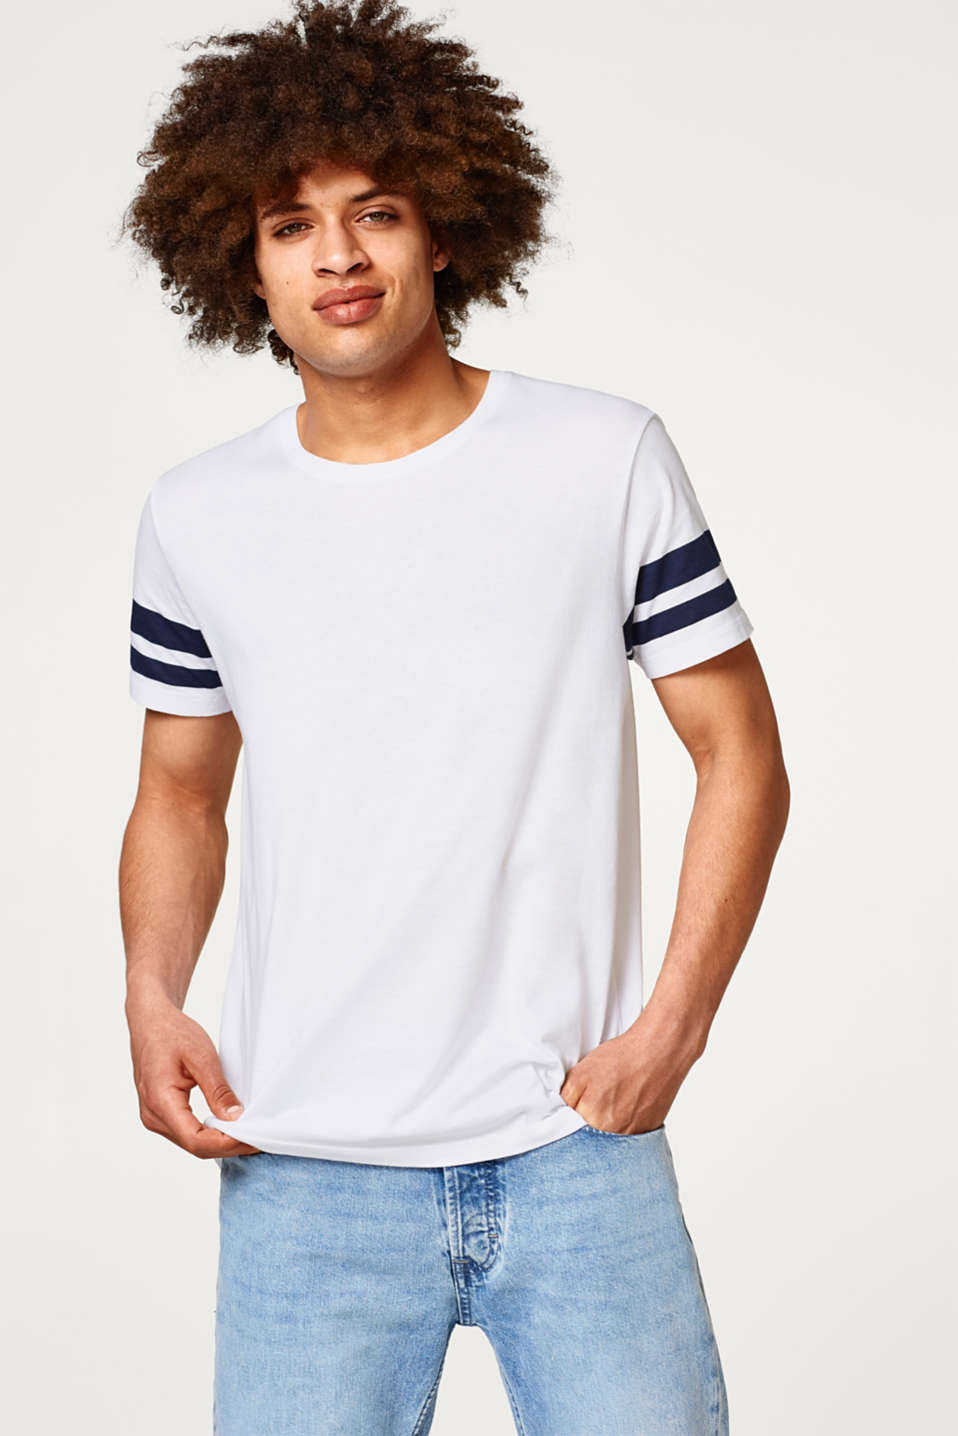 edc - Jersey T-shirt with accentuated stripes